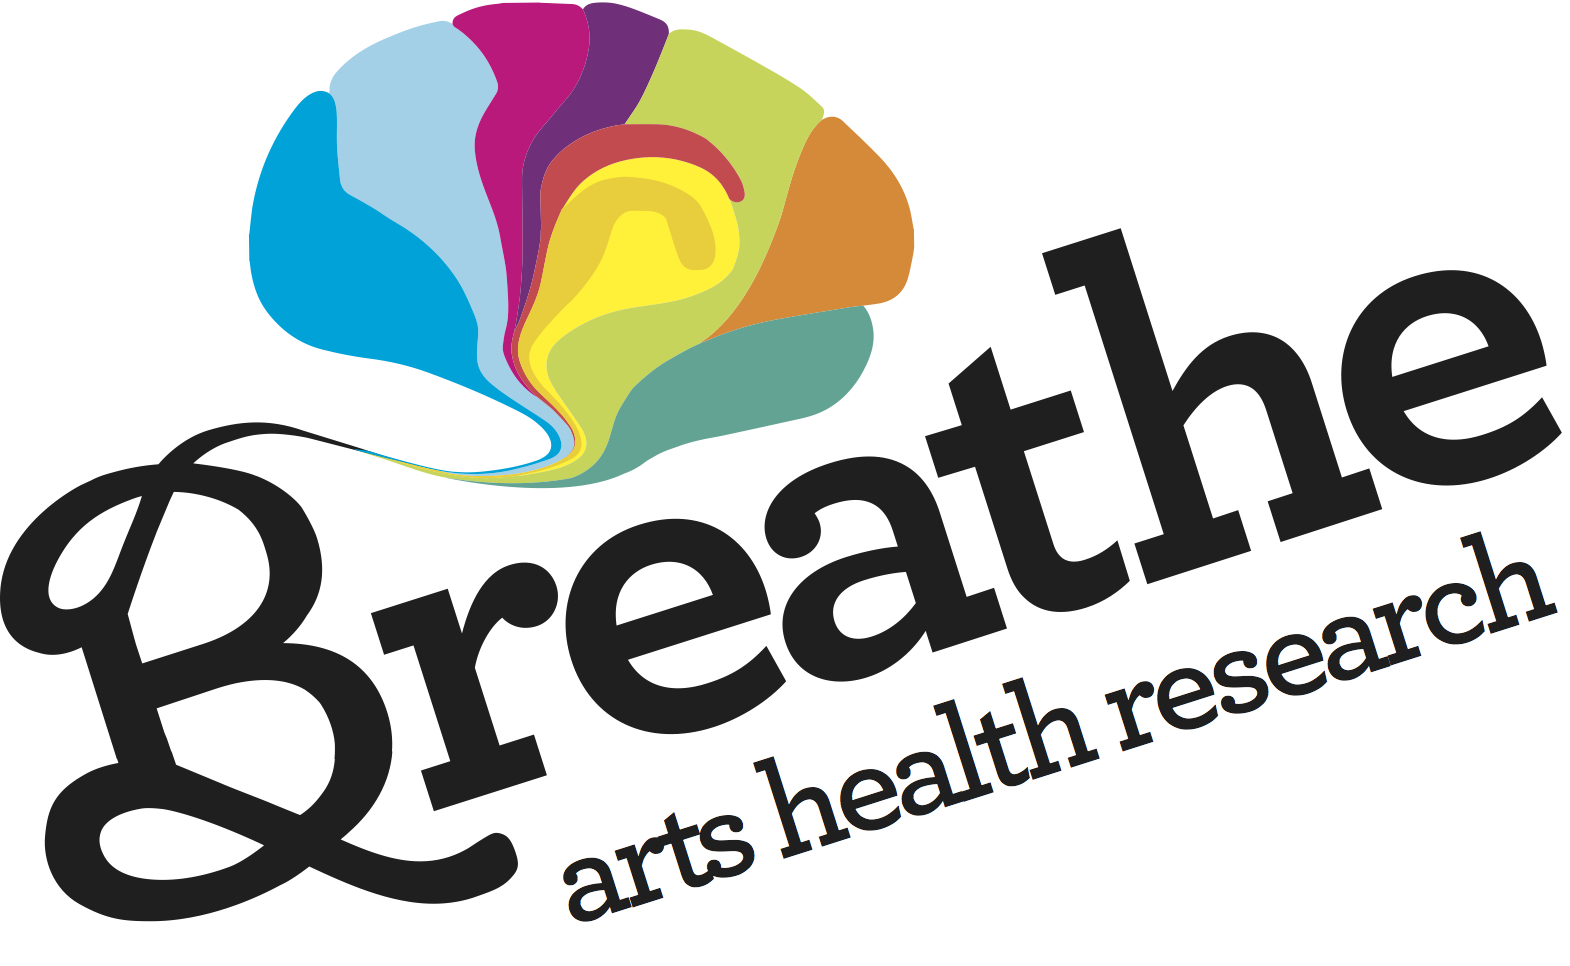 breathe arts health research